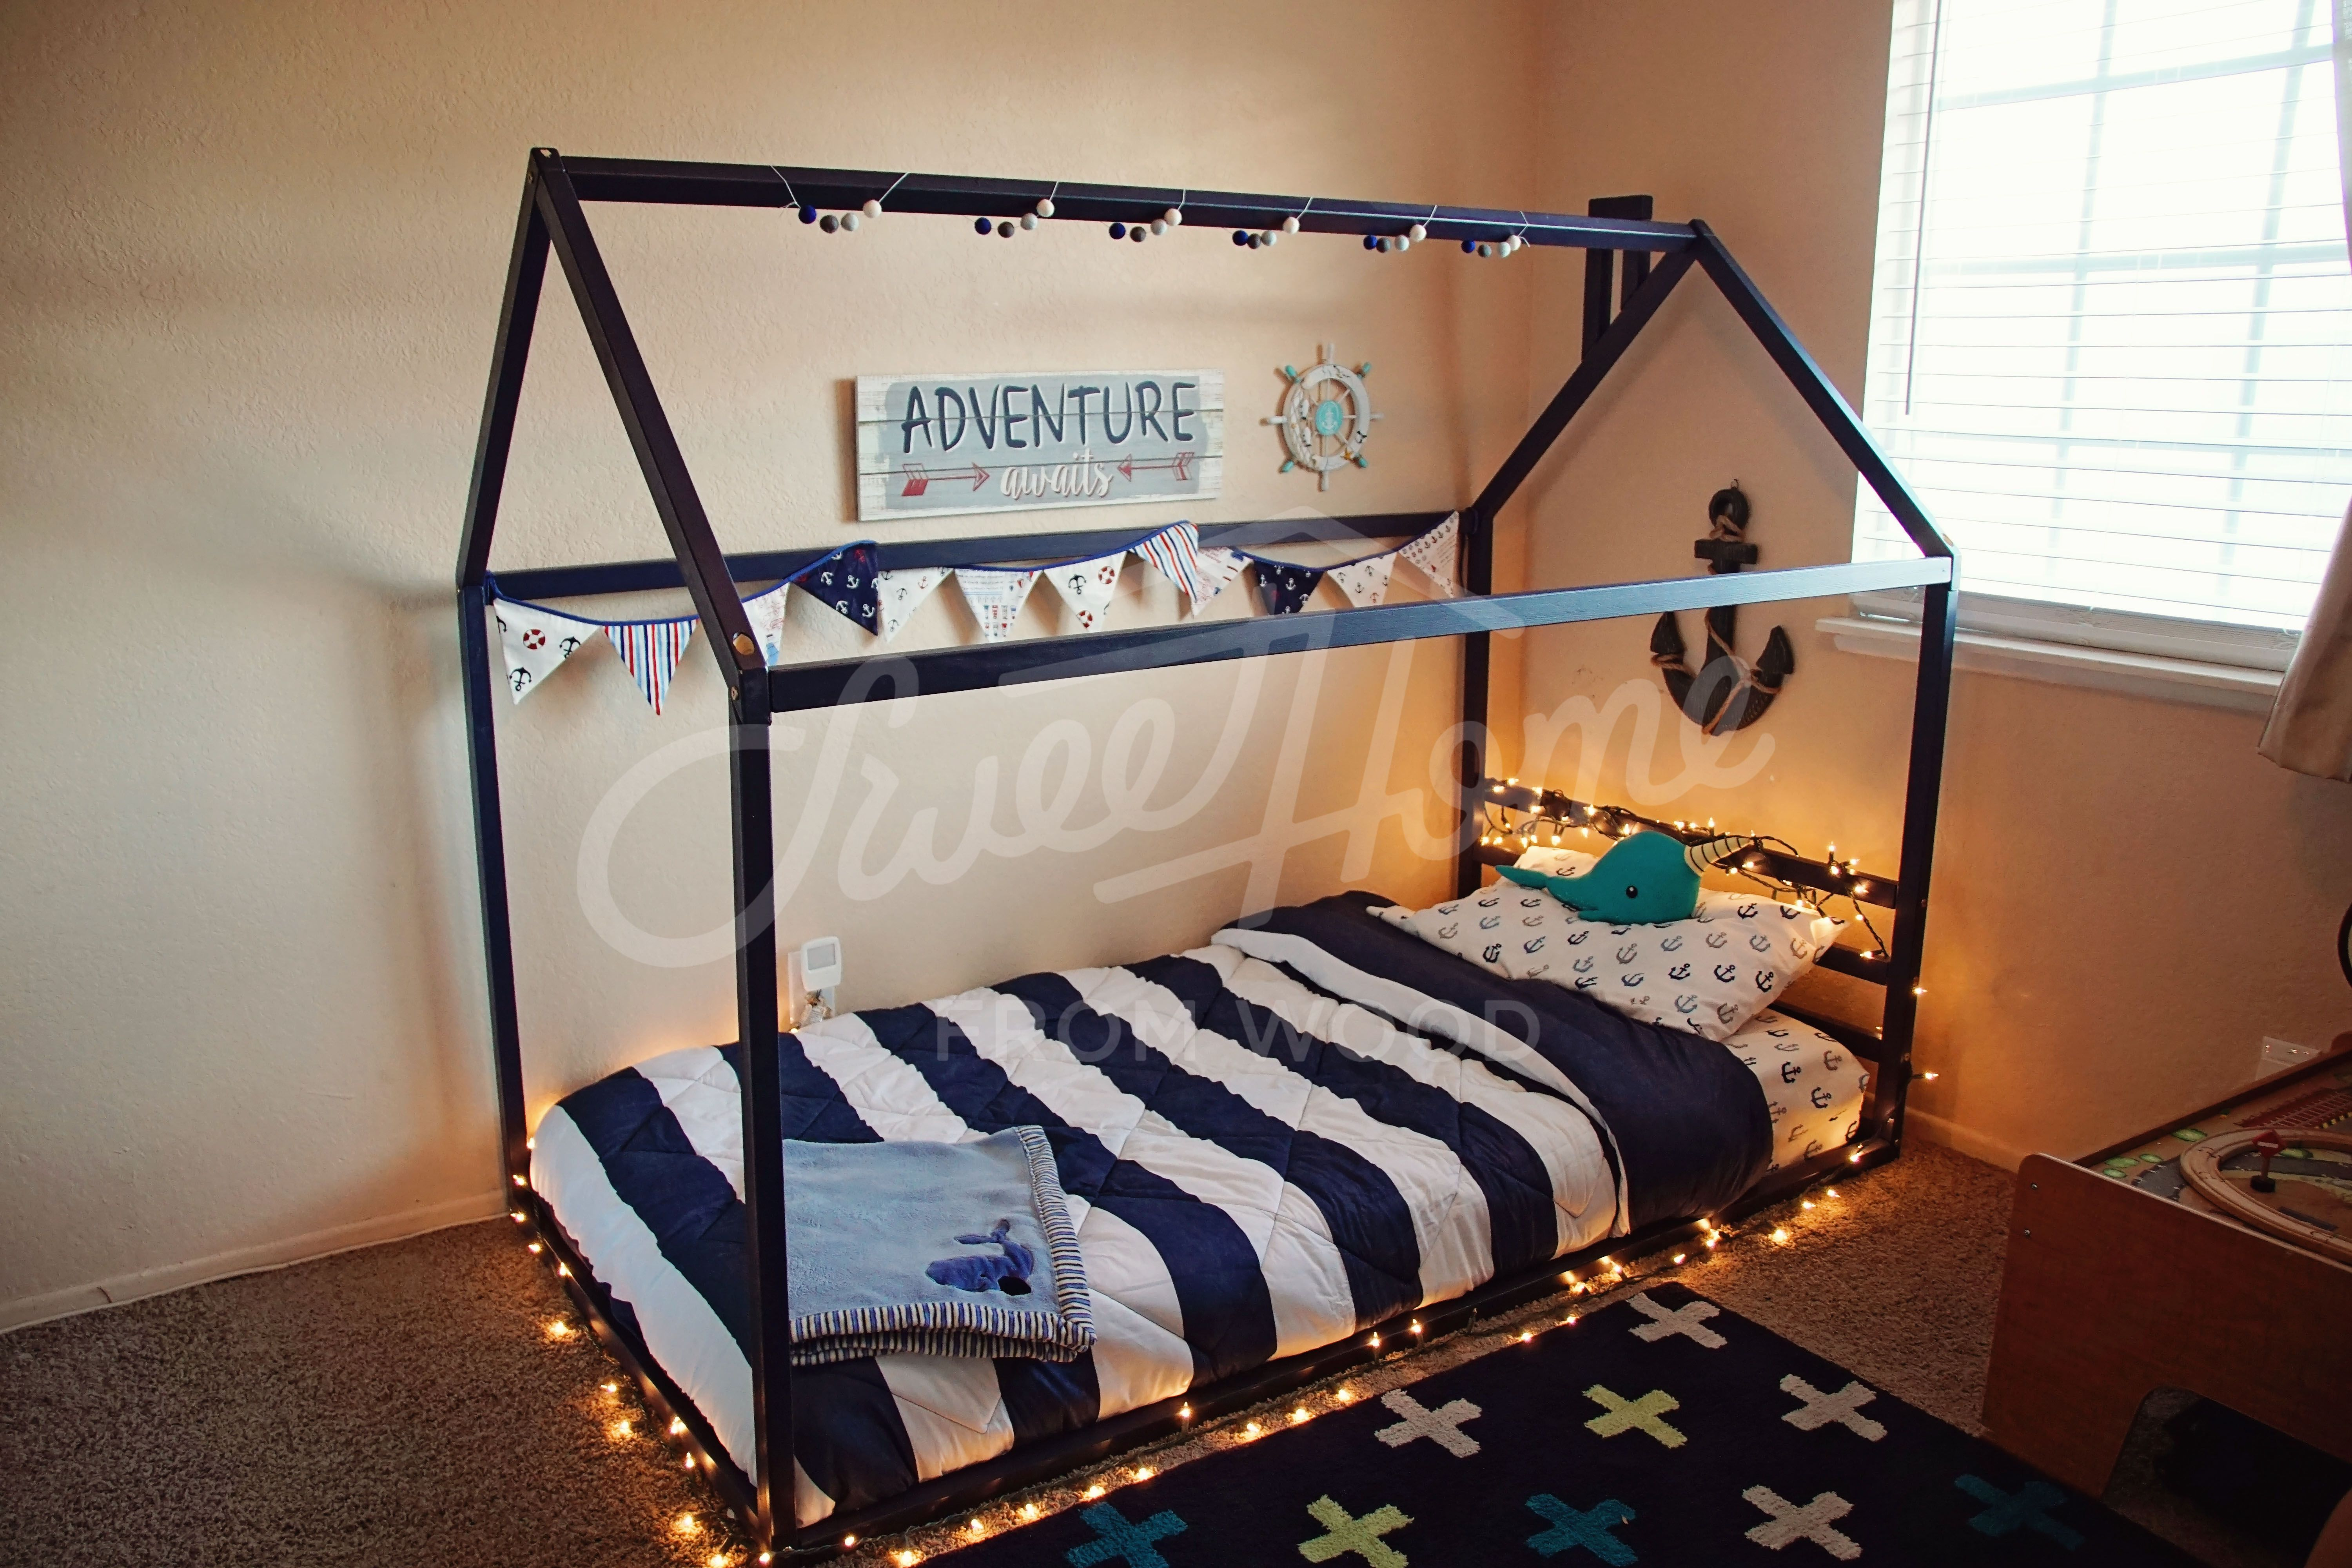 Toddler Bed Play House Bed Frame Children Bed Kids Bed Home Bed